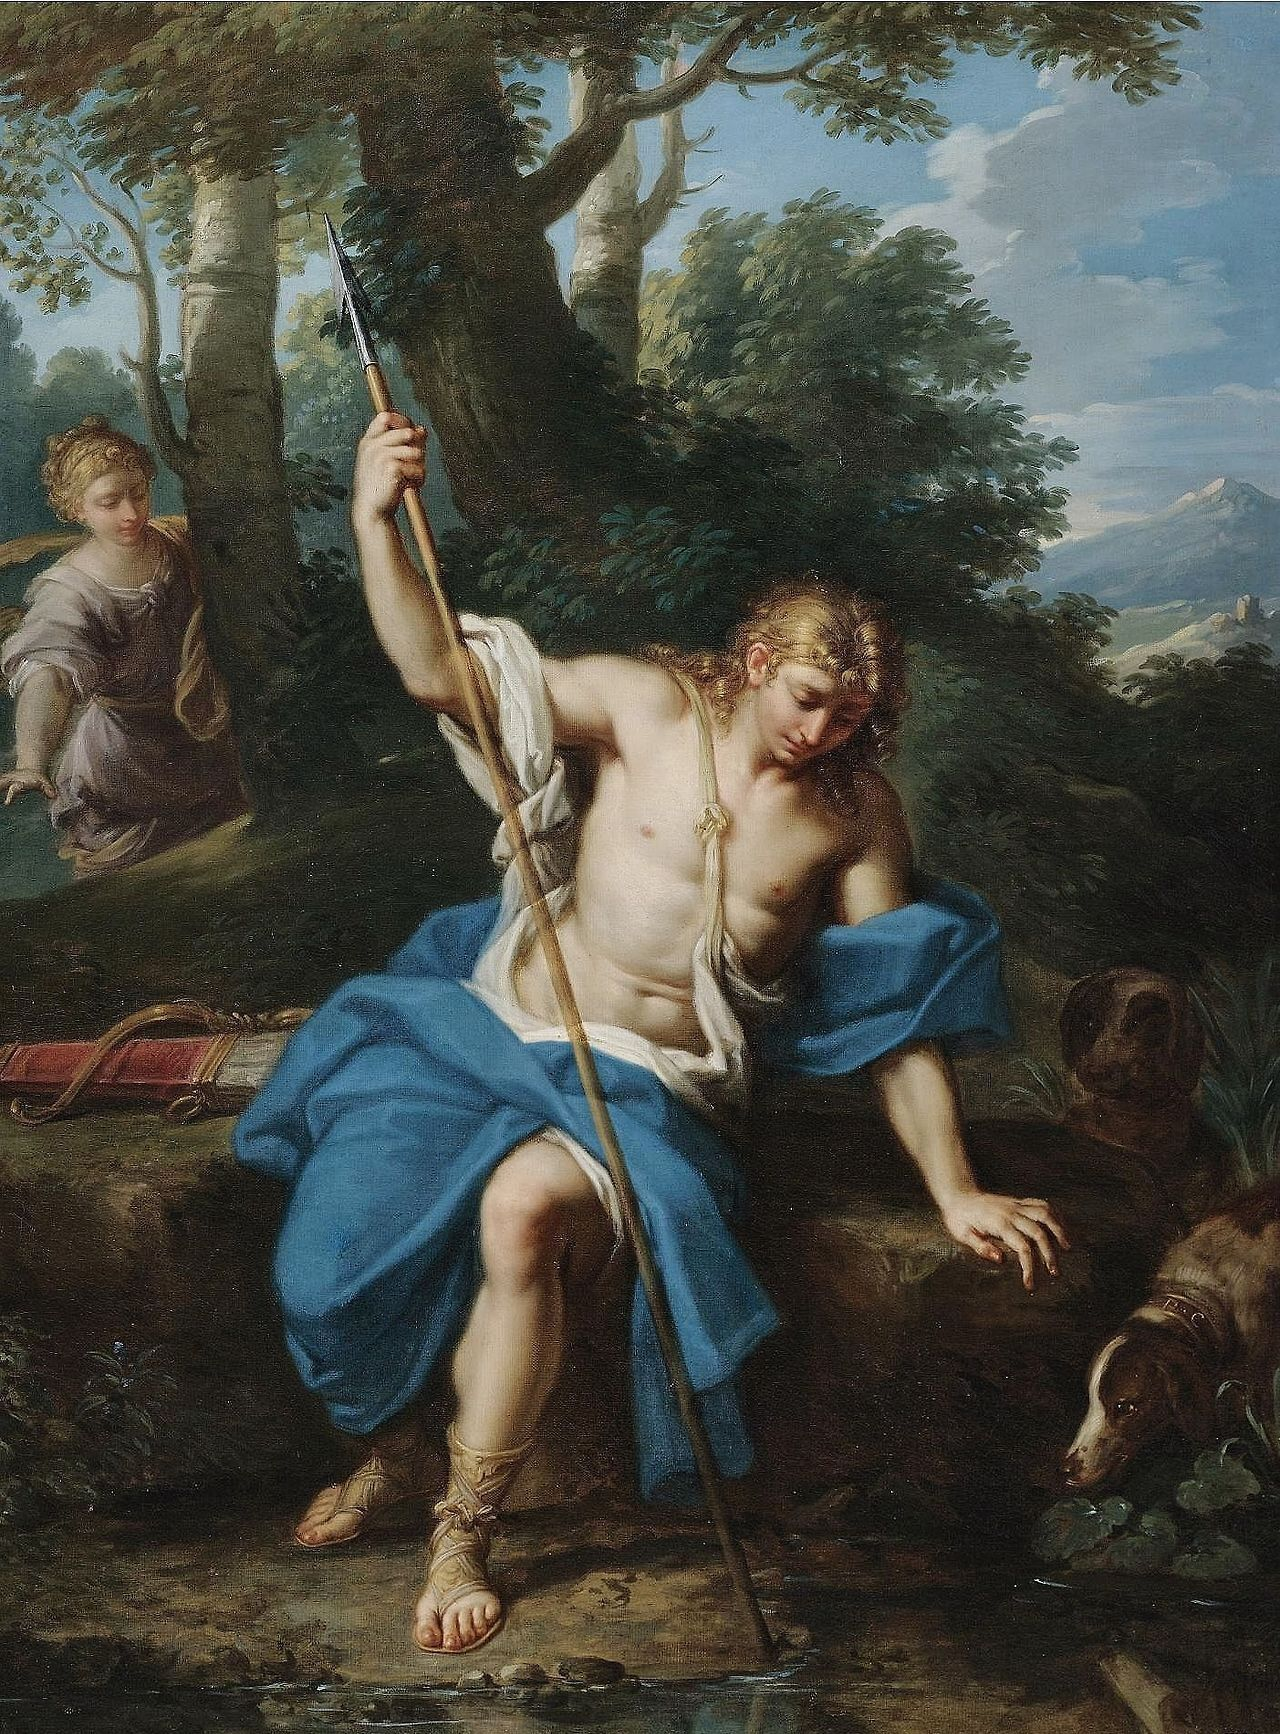 legend of narcissus who was narcissus lucky otters haven taxonomy  best images about narcisus oil on canvas nymphs 17 best images about narcisus oil on canvas